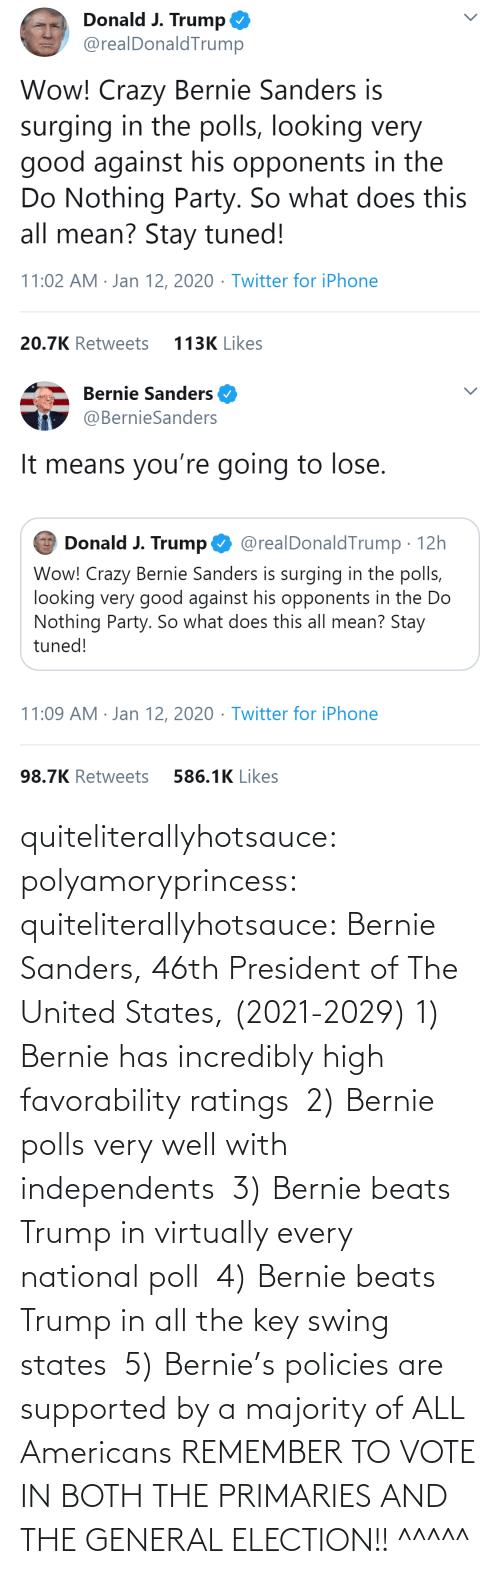 Bernie Sanders: quiteliterallyhotsauce:  polyamoryprincess:  quiteliterallyhotsauce:   Bernie Sanders, 46th President of The United States, (2021-2029)    1) Bernie has incredibly high favorability ratings  2) Bernie polls very well with independents  3) Bernie beats Trump in virtually every national poll  4) Bernie beats Trump in all the key swing states  5) Bernie's policies are supported by a majority of ALL Americans    REMEMBER TO VOTE IN BOTH THE PRIMARIES AND THE GENERAL ELECTION!!  ^^^^^